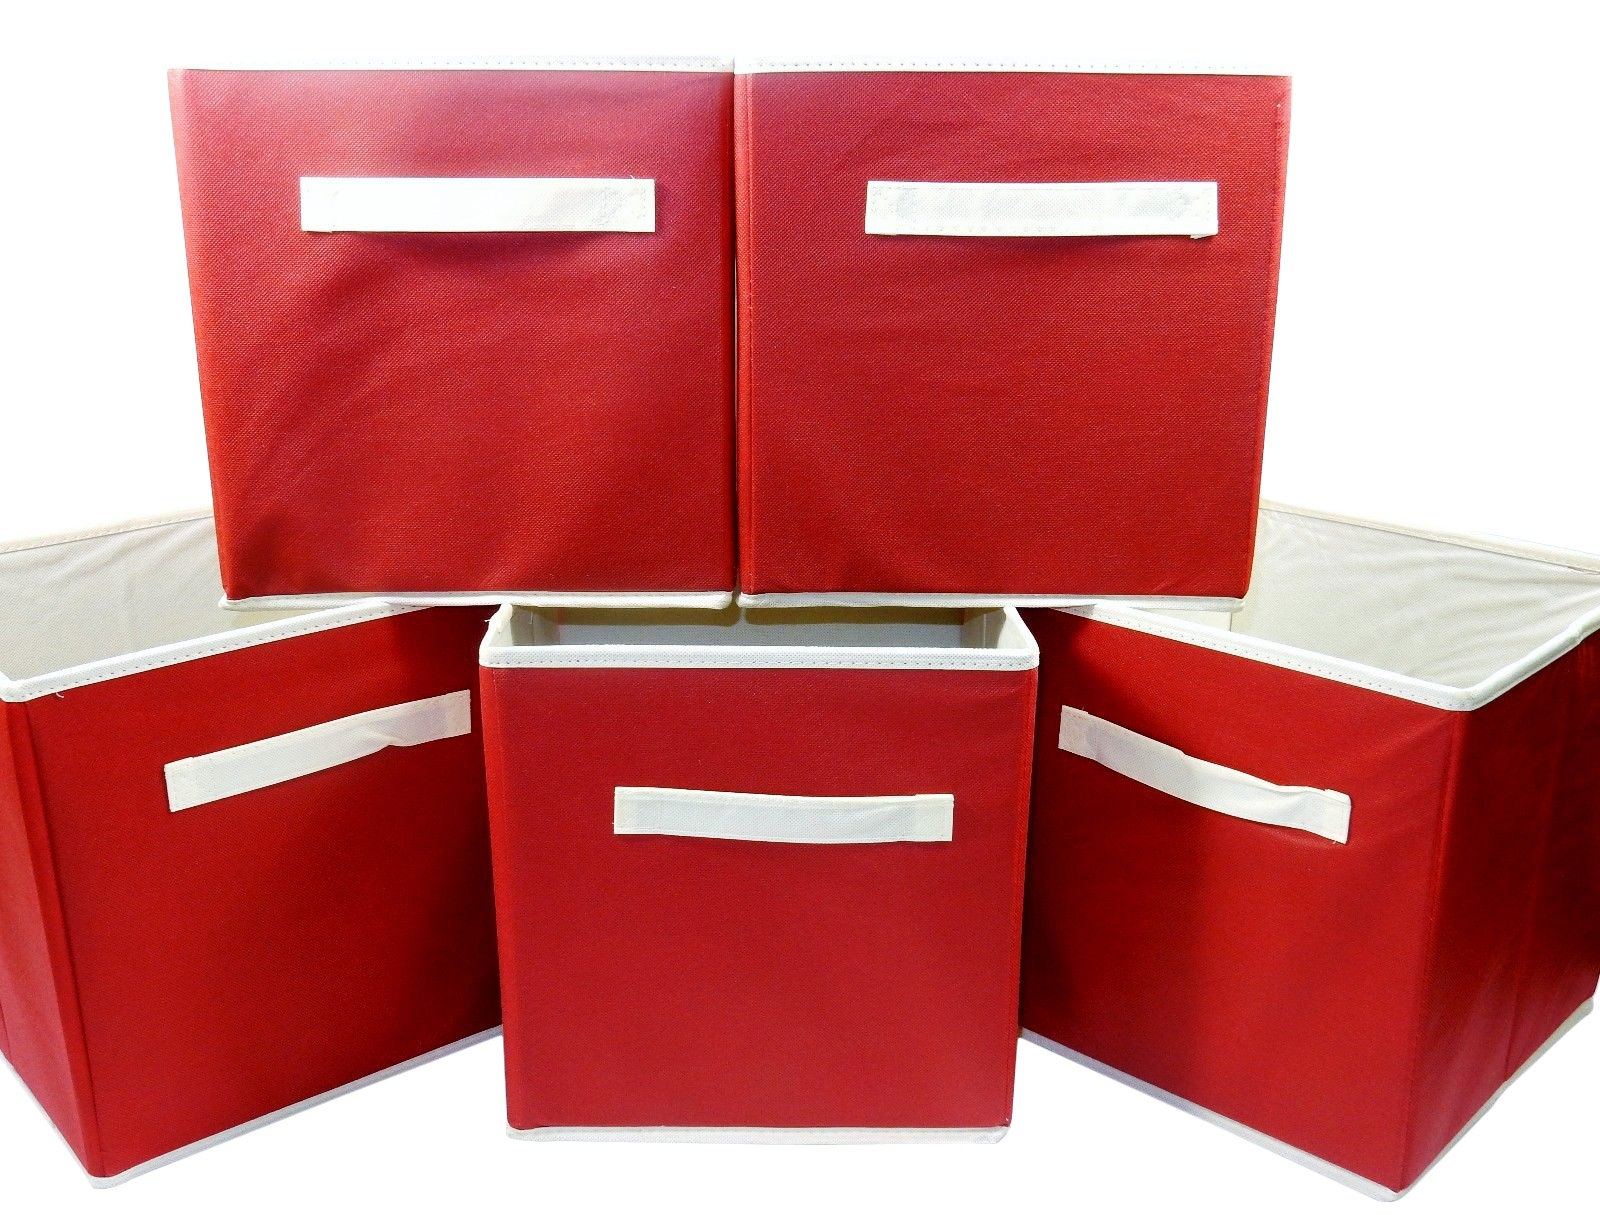 Prime Line Set of 5 Folding Storage Cubes, 10.5x10.5x11 - Red Fabric, Home, School, Office.